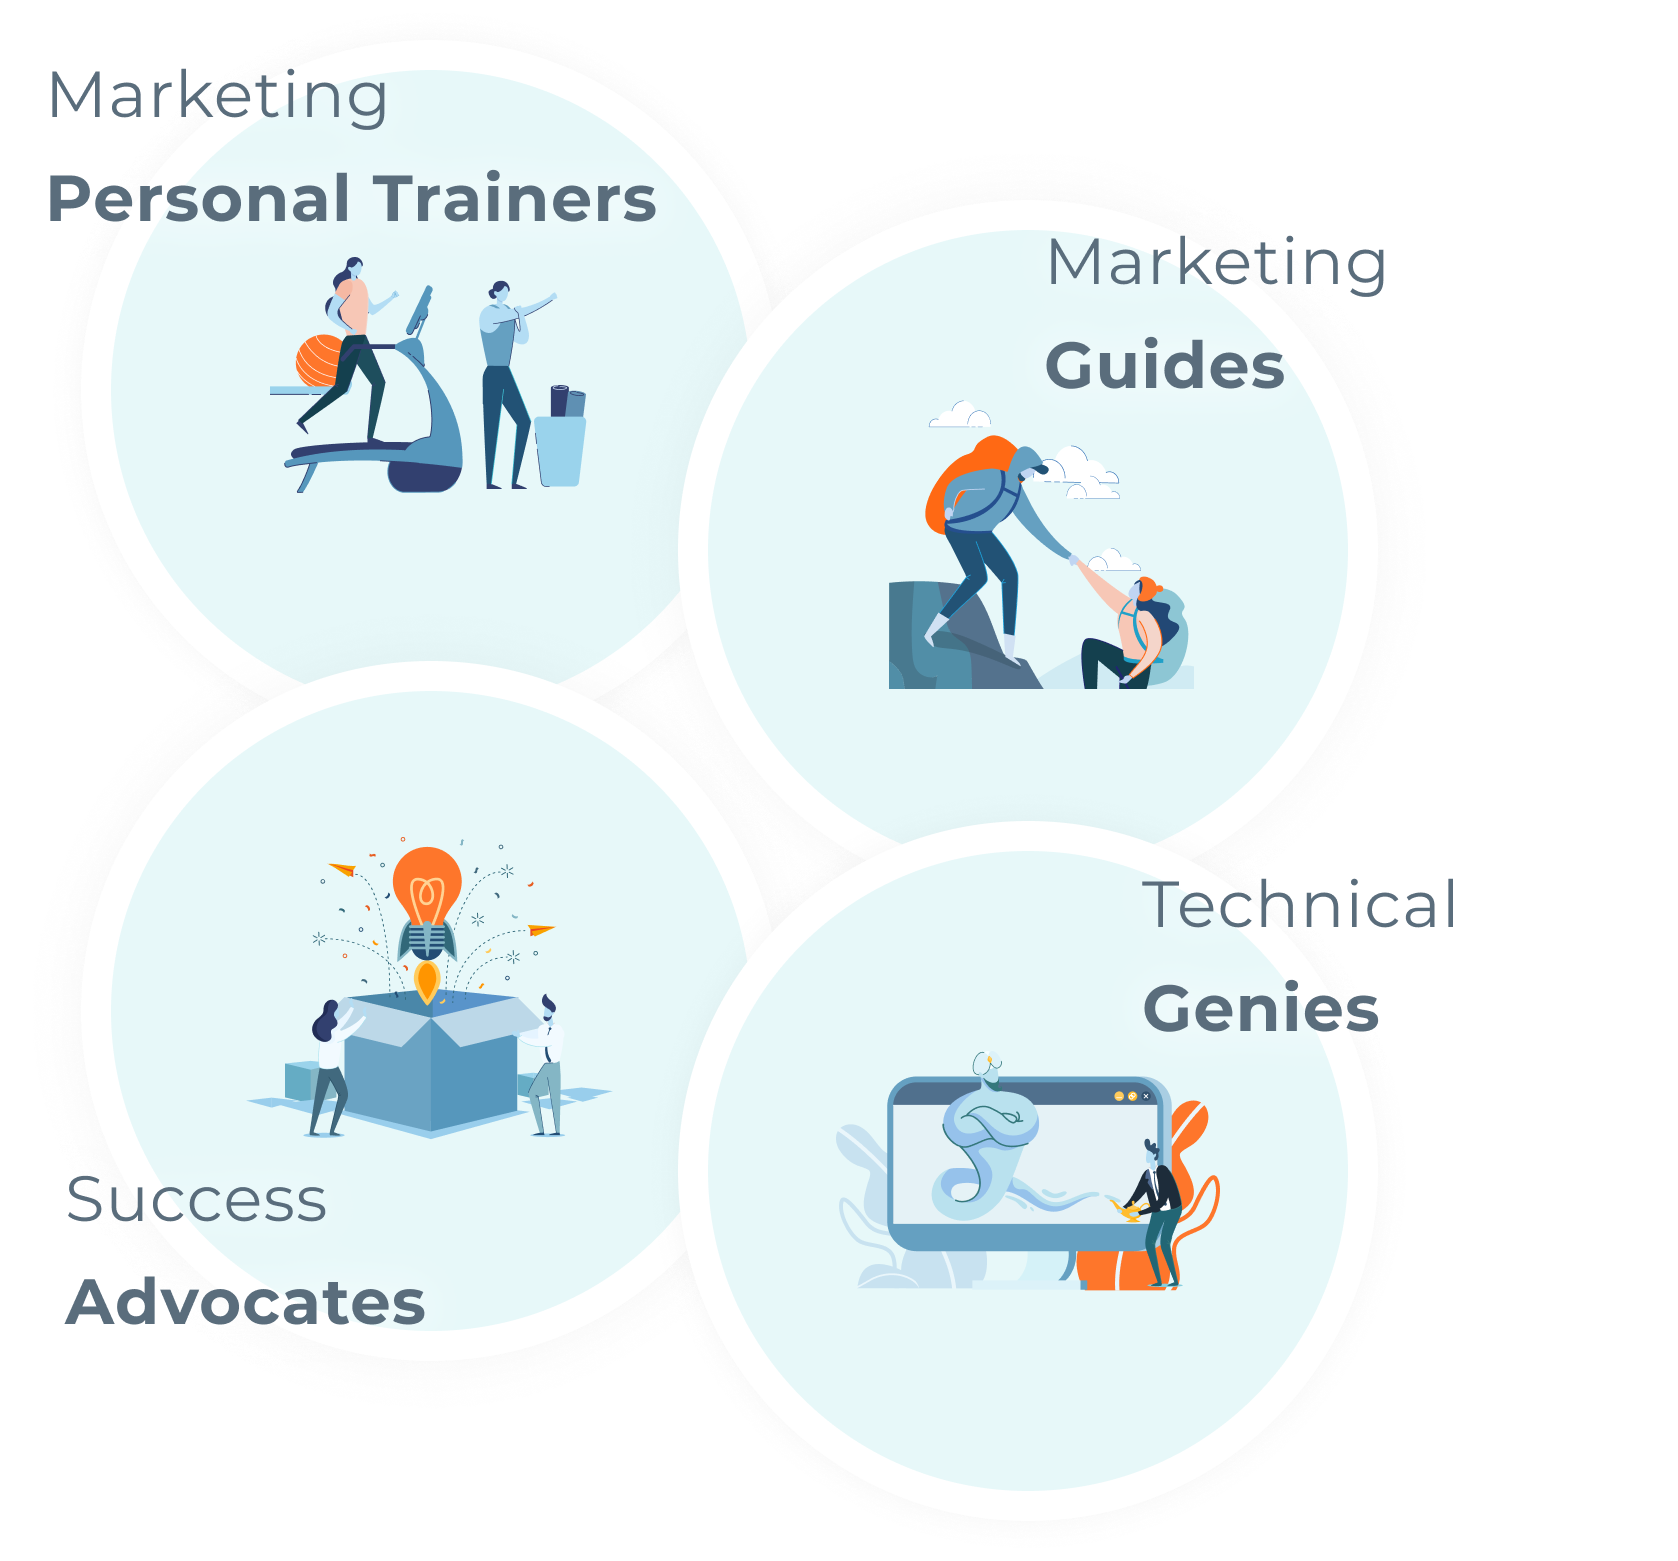 Graphics of marketing personal trainers, marketing guides, technical genies, and success advocates